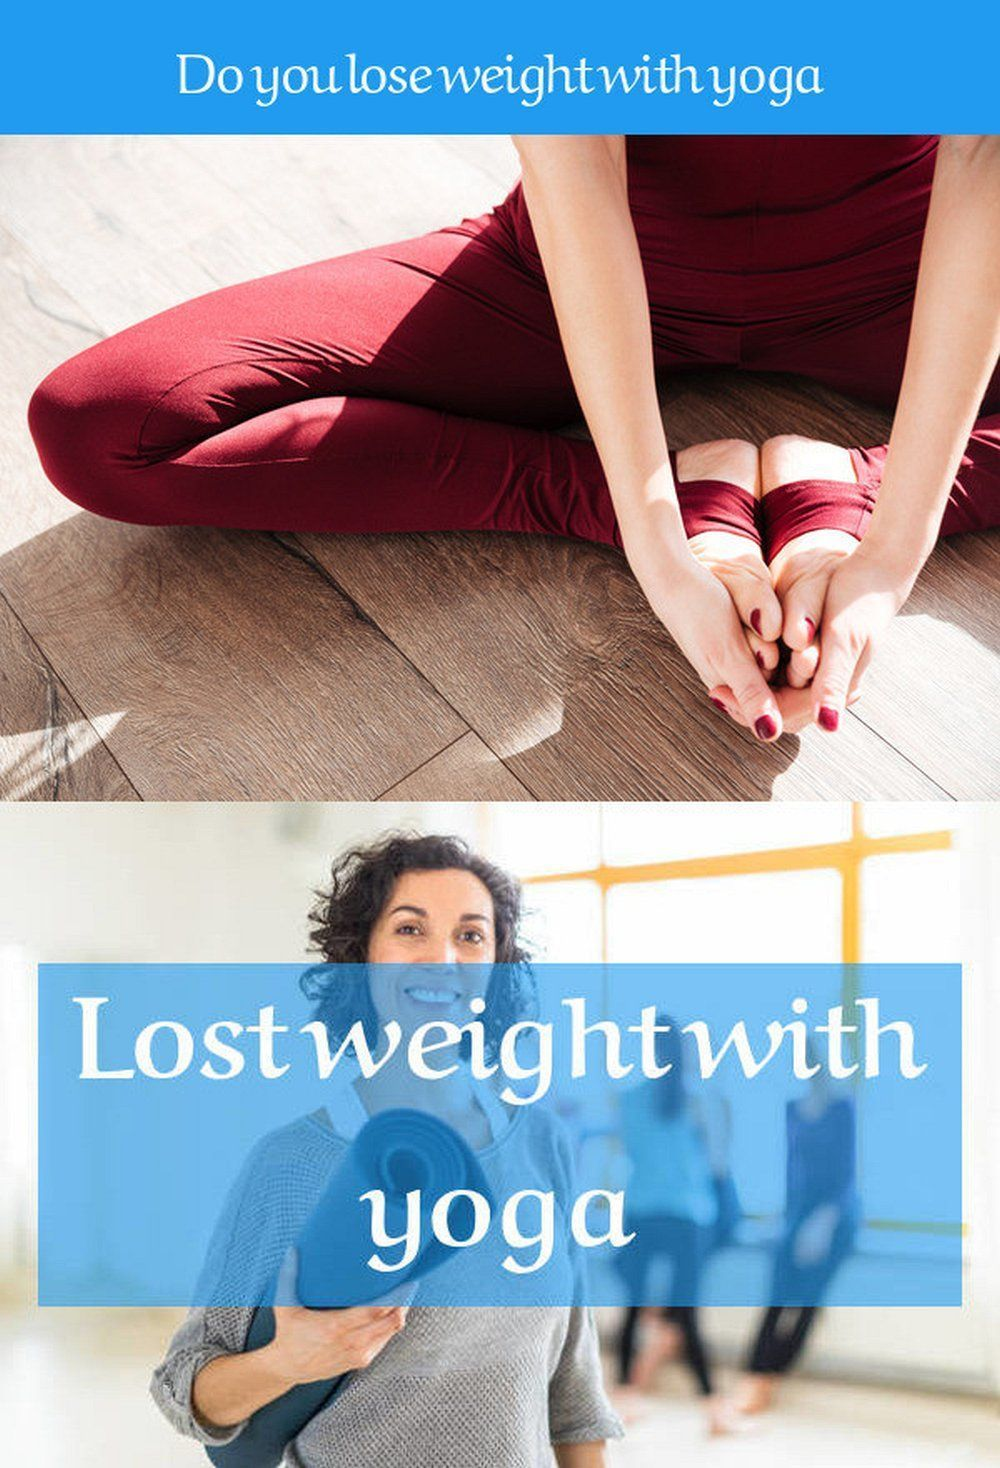 Quick weight loss center diet tips #looseweight  | easy fast diets#weightlossjourney #fitness #healt...